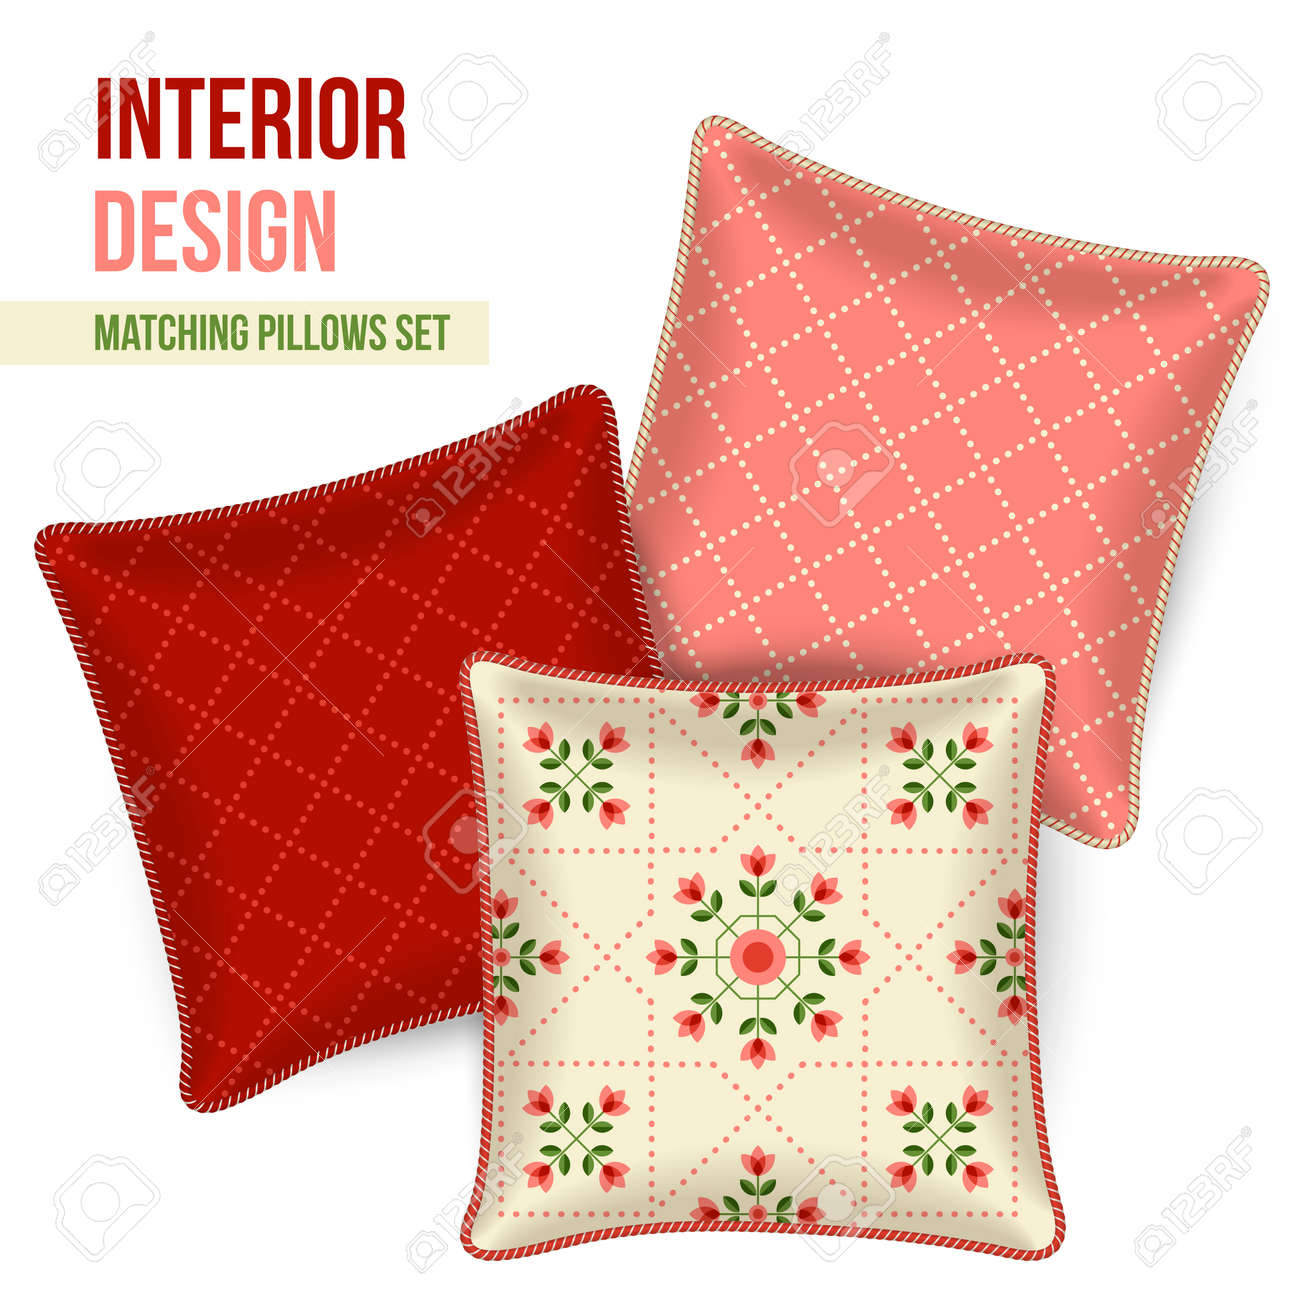 Decorative Pillow Set Set Of Three Matching Decorative Pillows For Interior Design